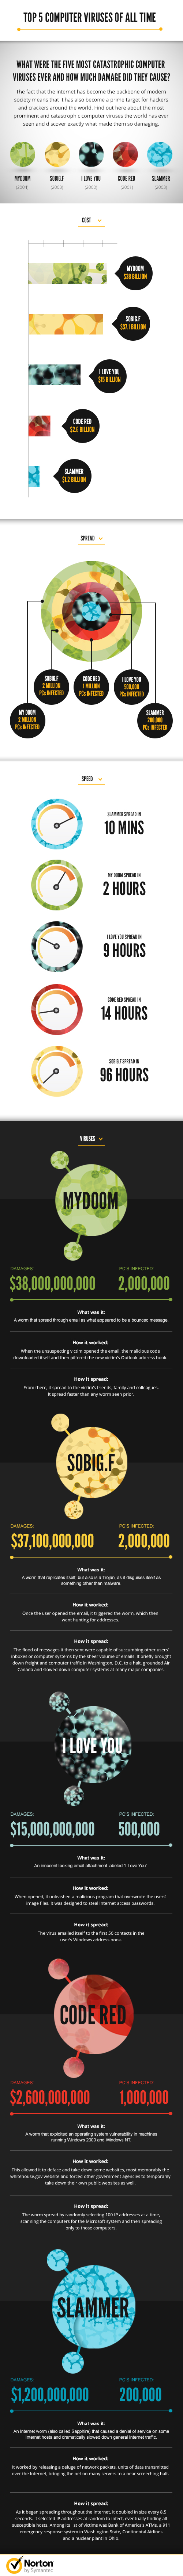 norton virus infographic Infographic: Five Most Catastrophic Viruses of All Time